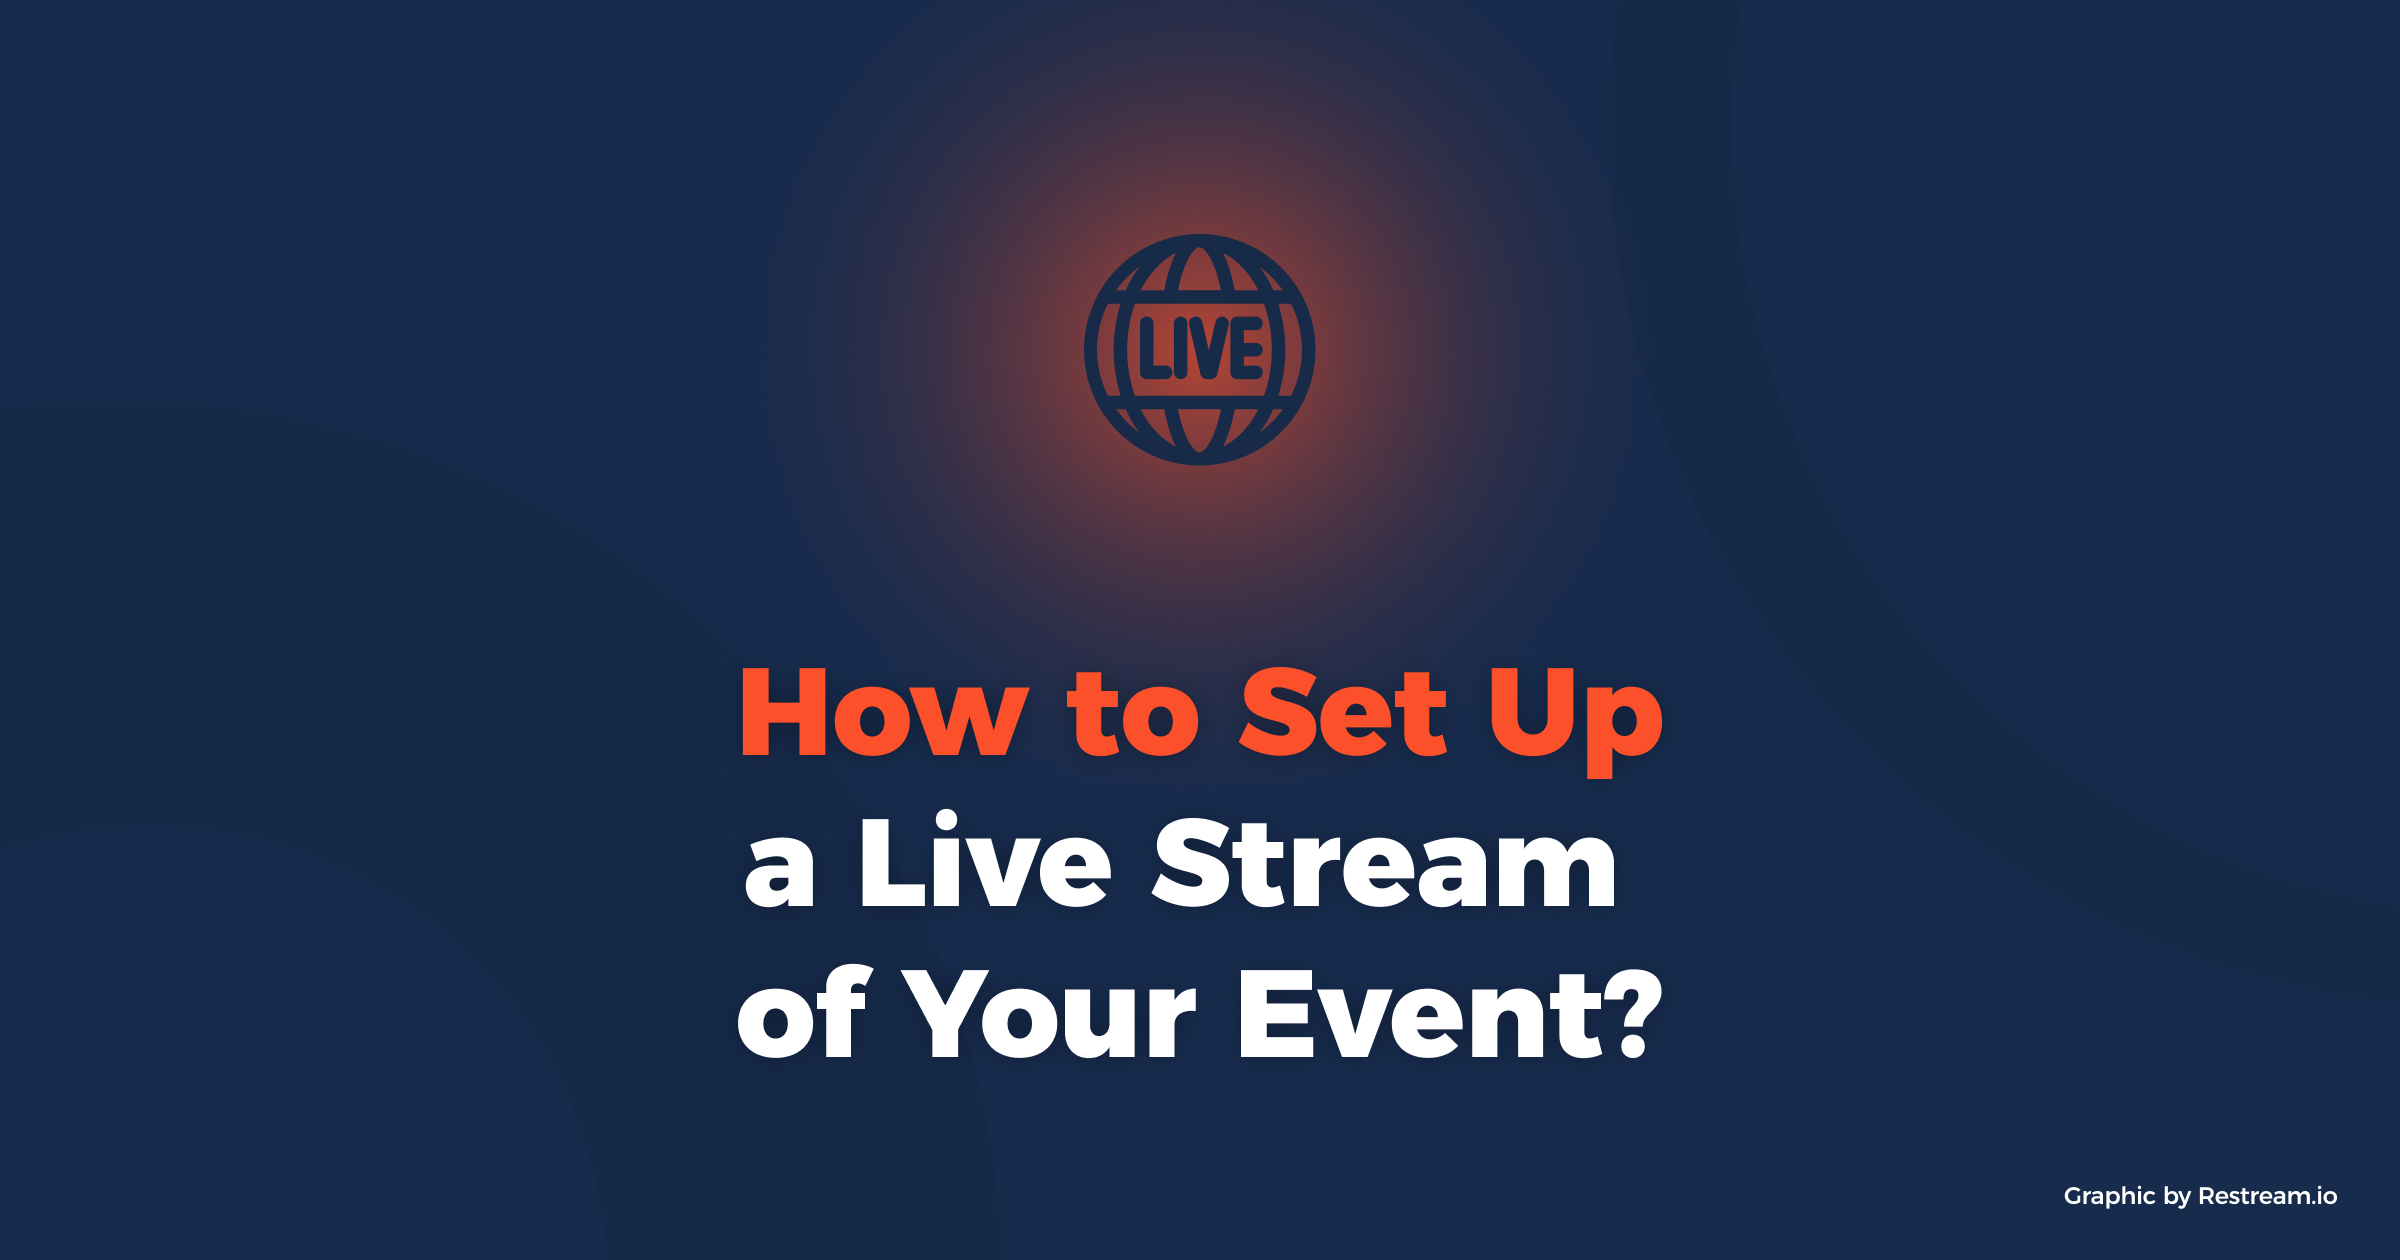 How to set up a live stream of your event